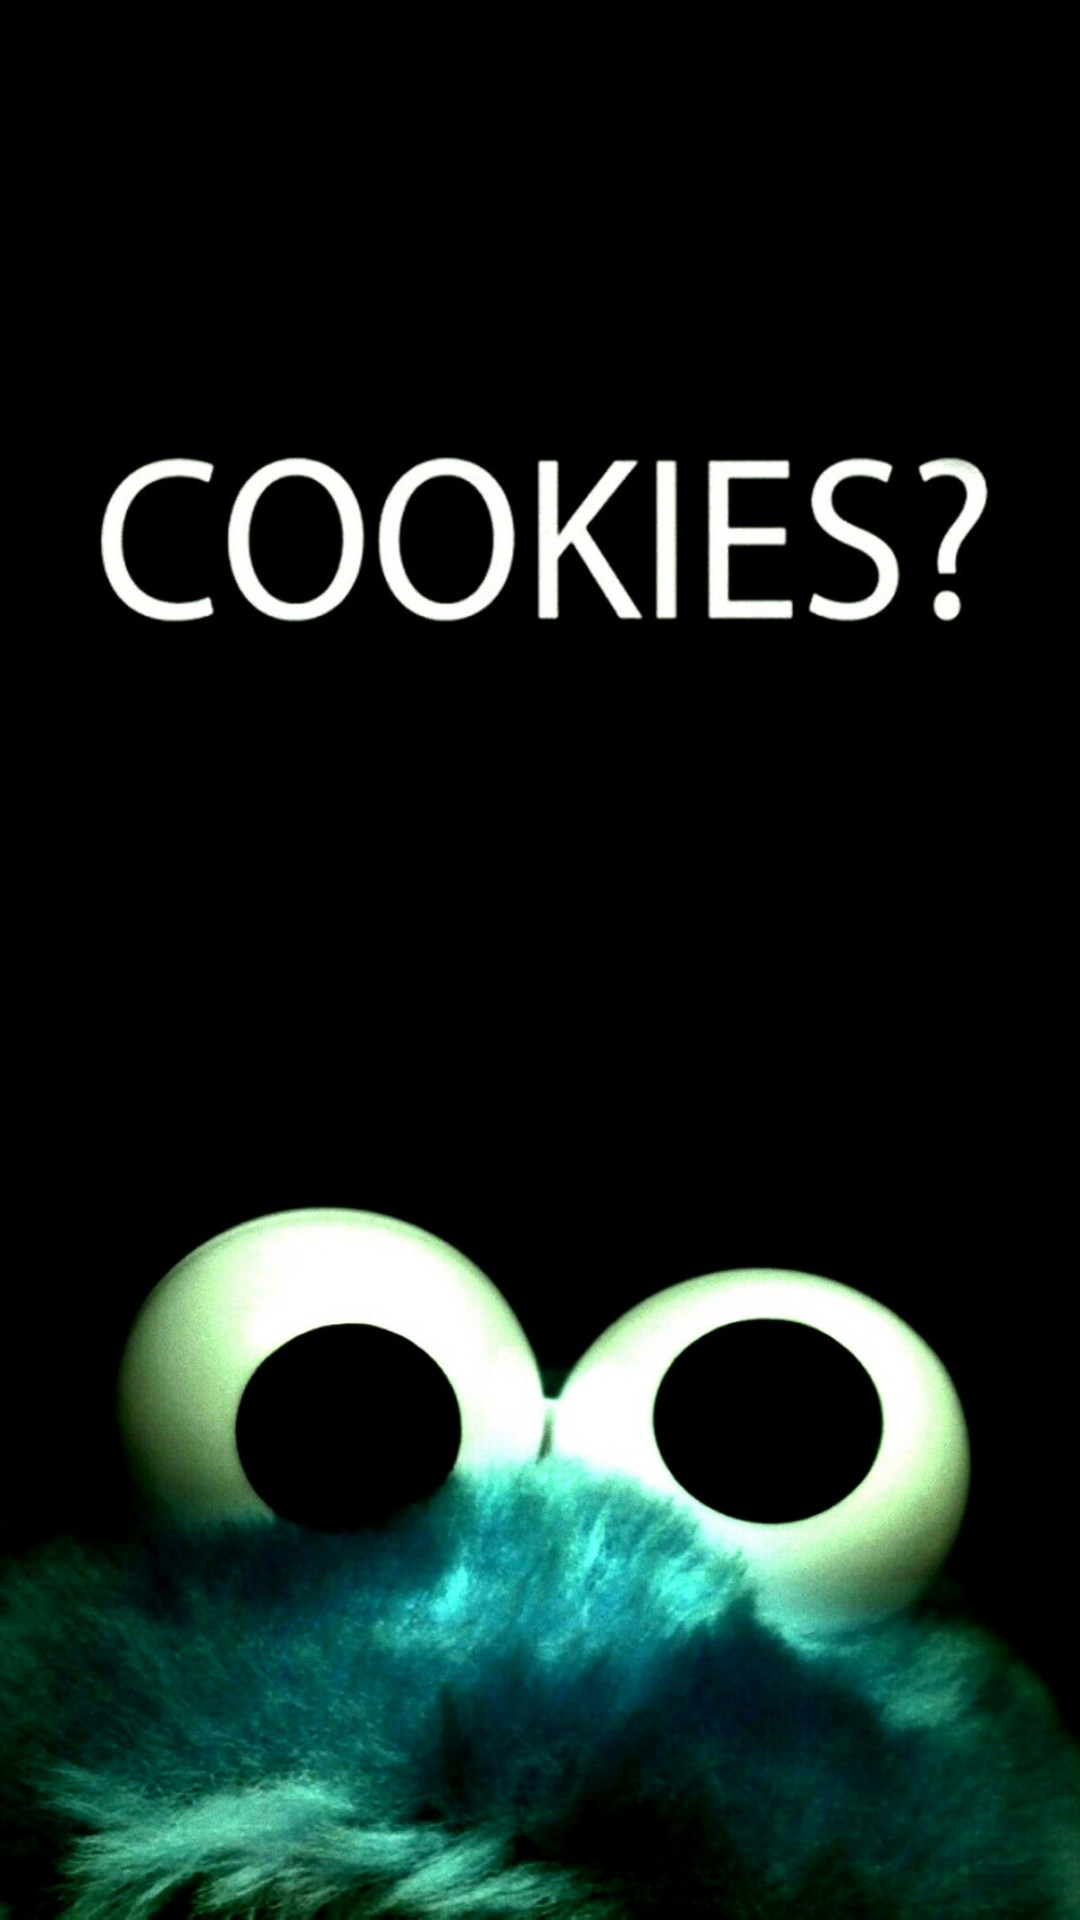 1920x1200 Hd Cookie Monster Wallpapers Windows Tablet 4k High Definition Samsung Free Download 1920A 1200 Wallpaper HD